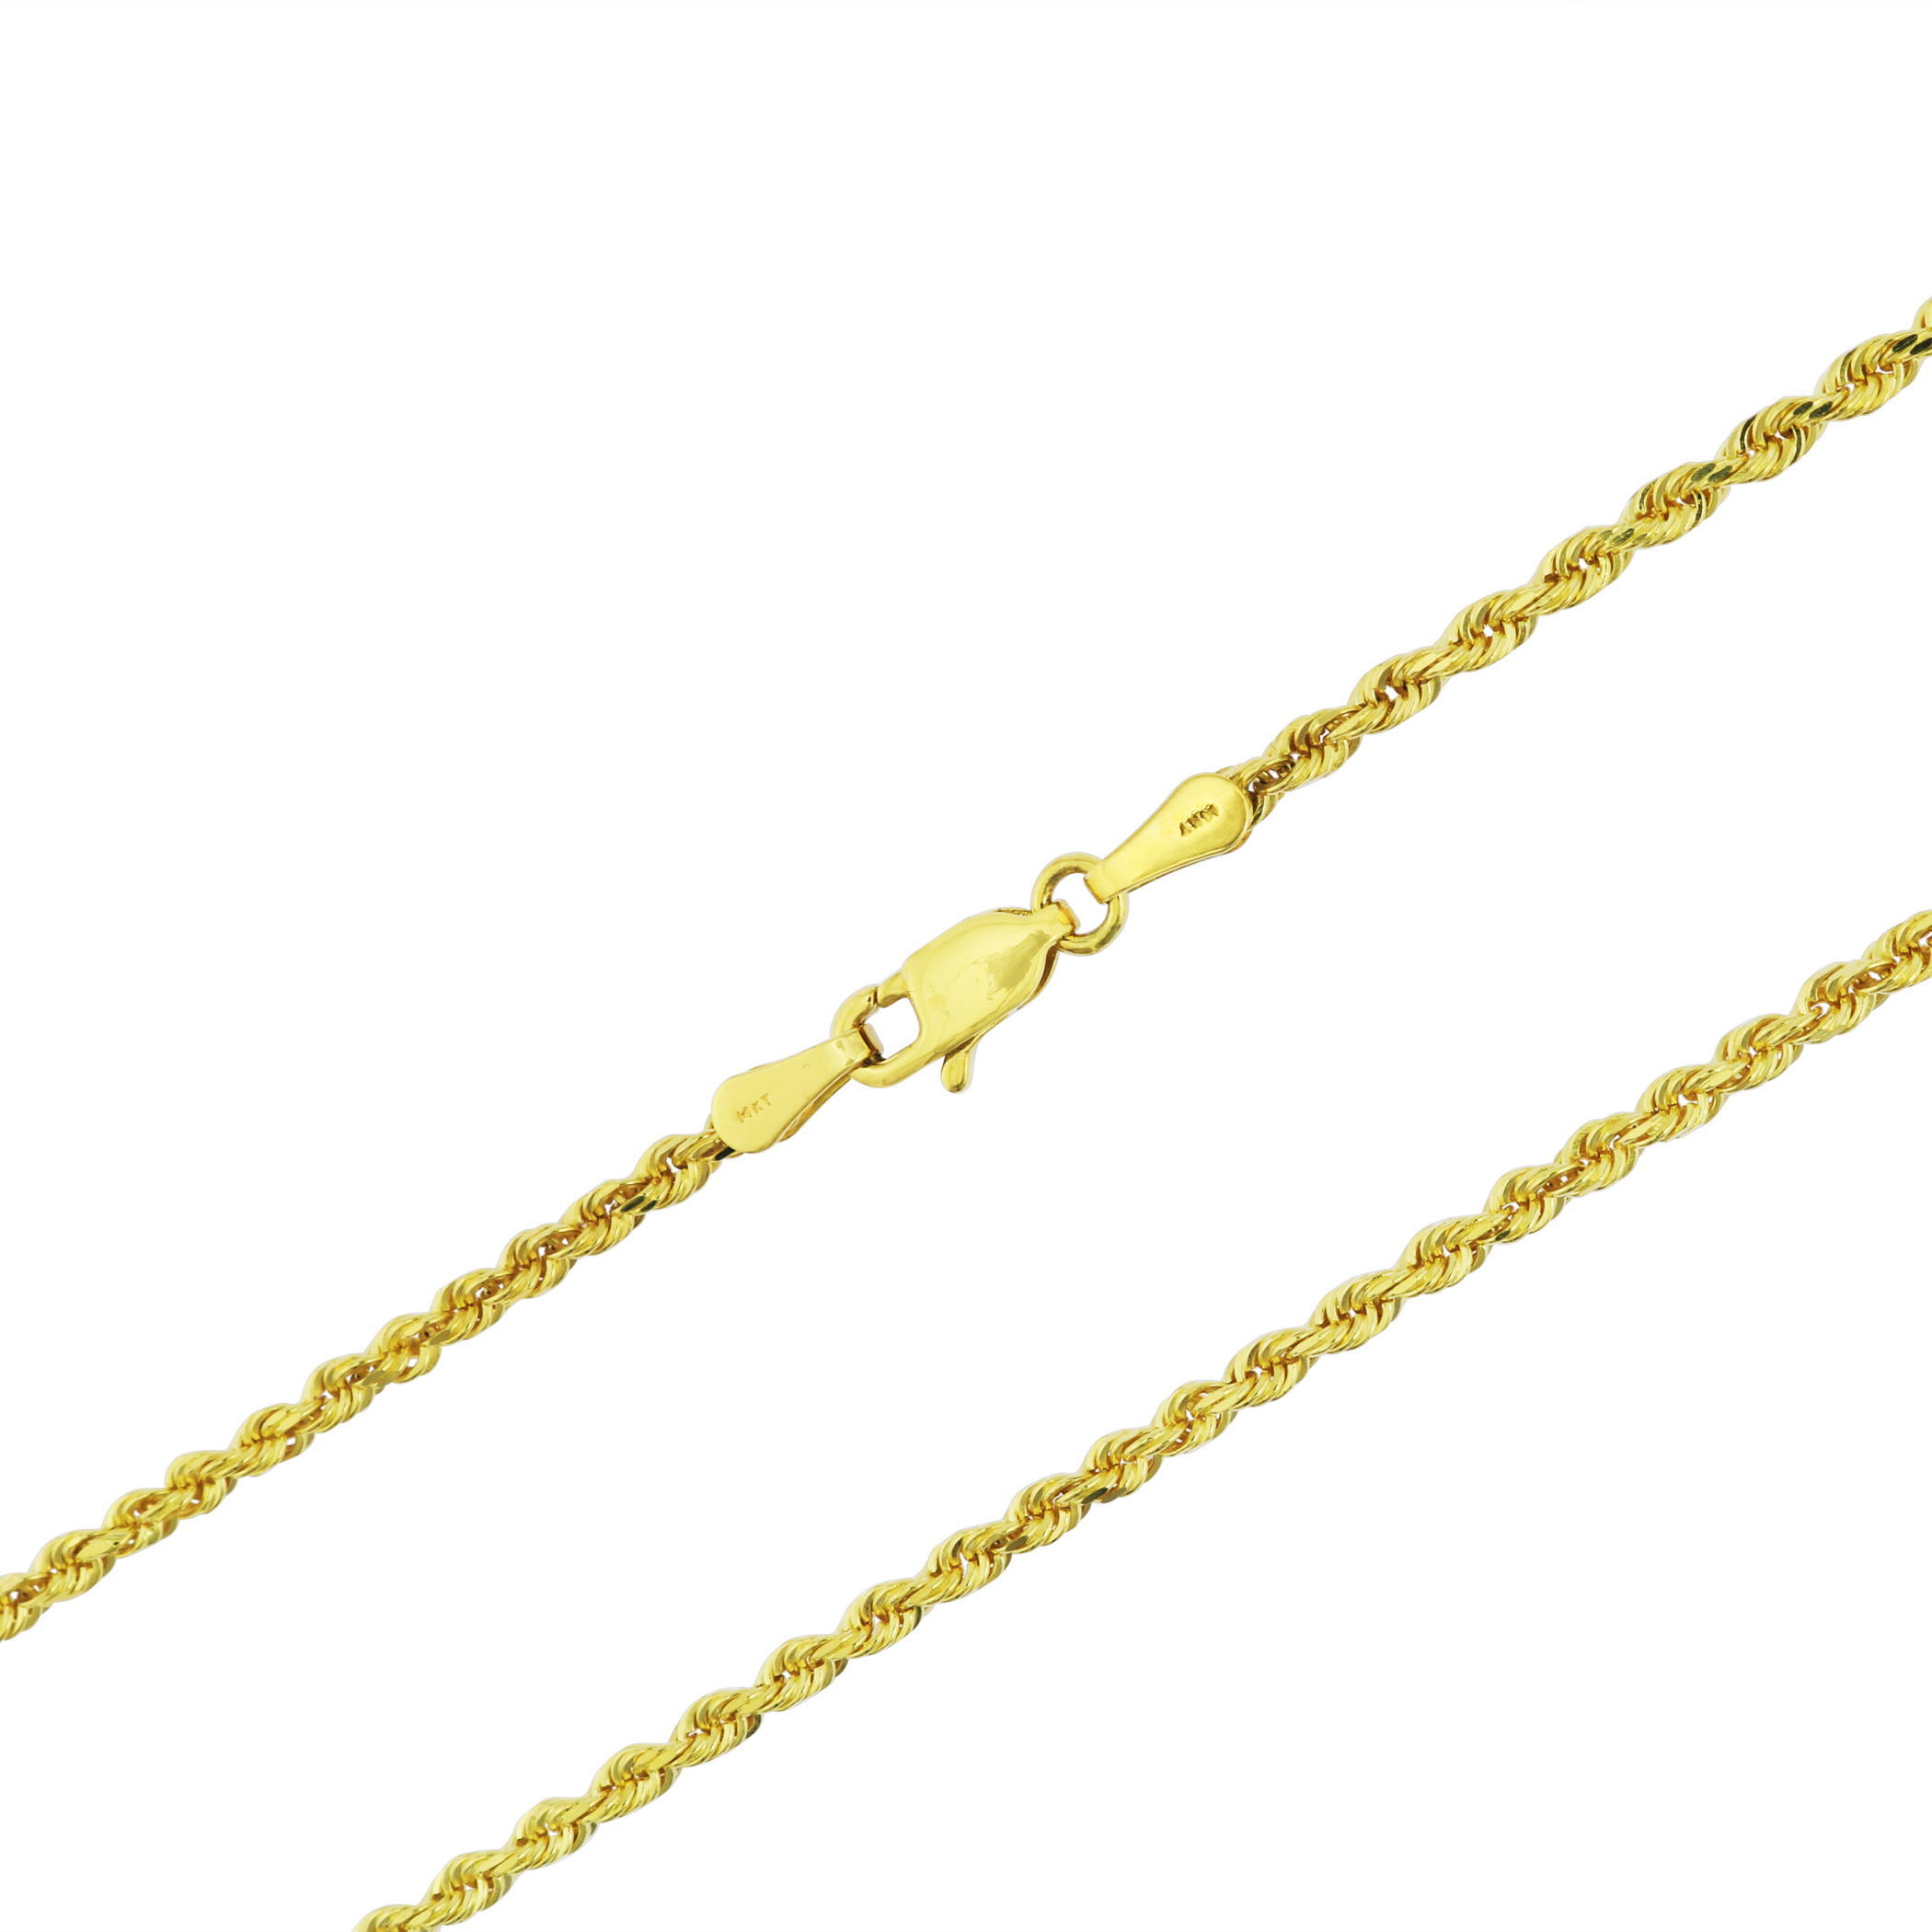 Solid-14K-Yellow-Gold-2-5mm-Mens-Women-Diamond-Cut-Rope-Chain-Necklace-16-034-30-034 thumbnail 22